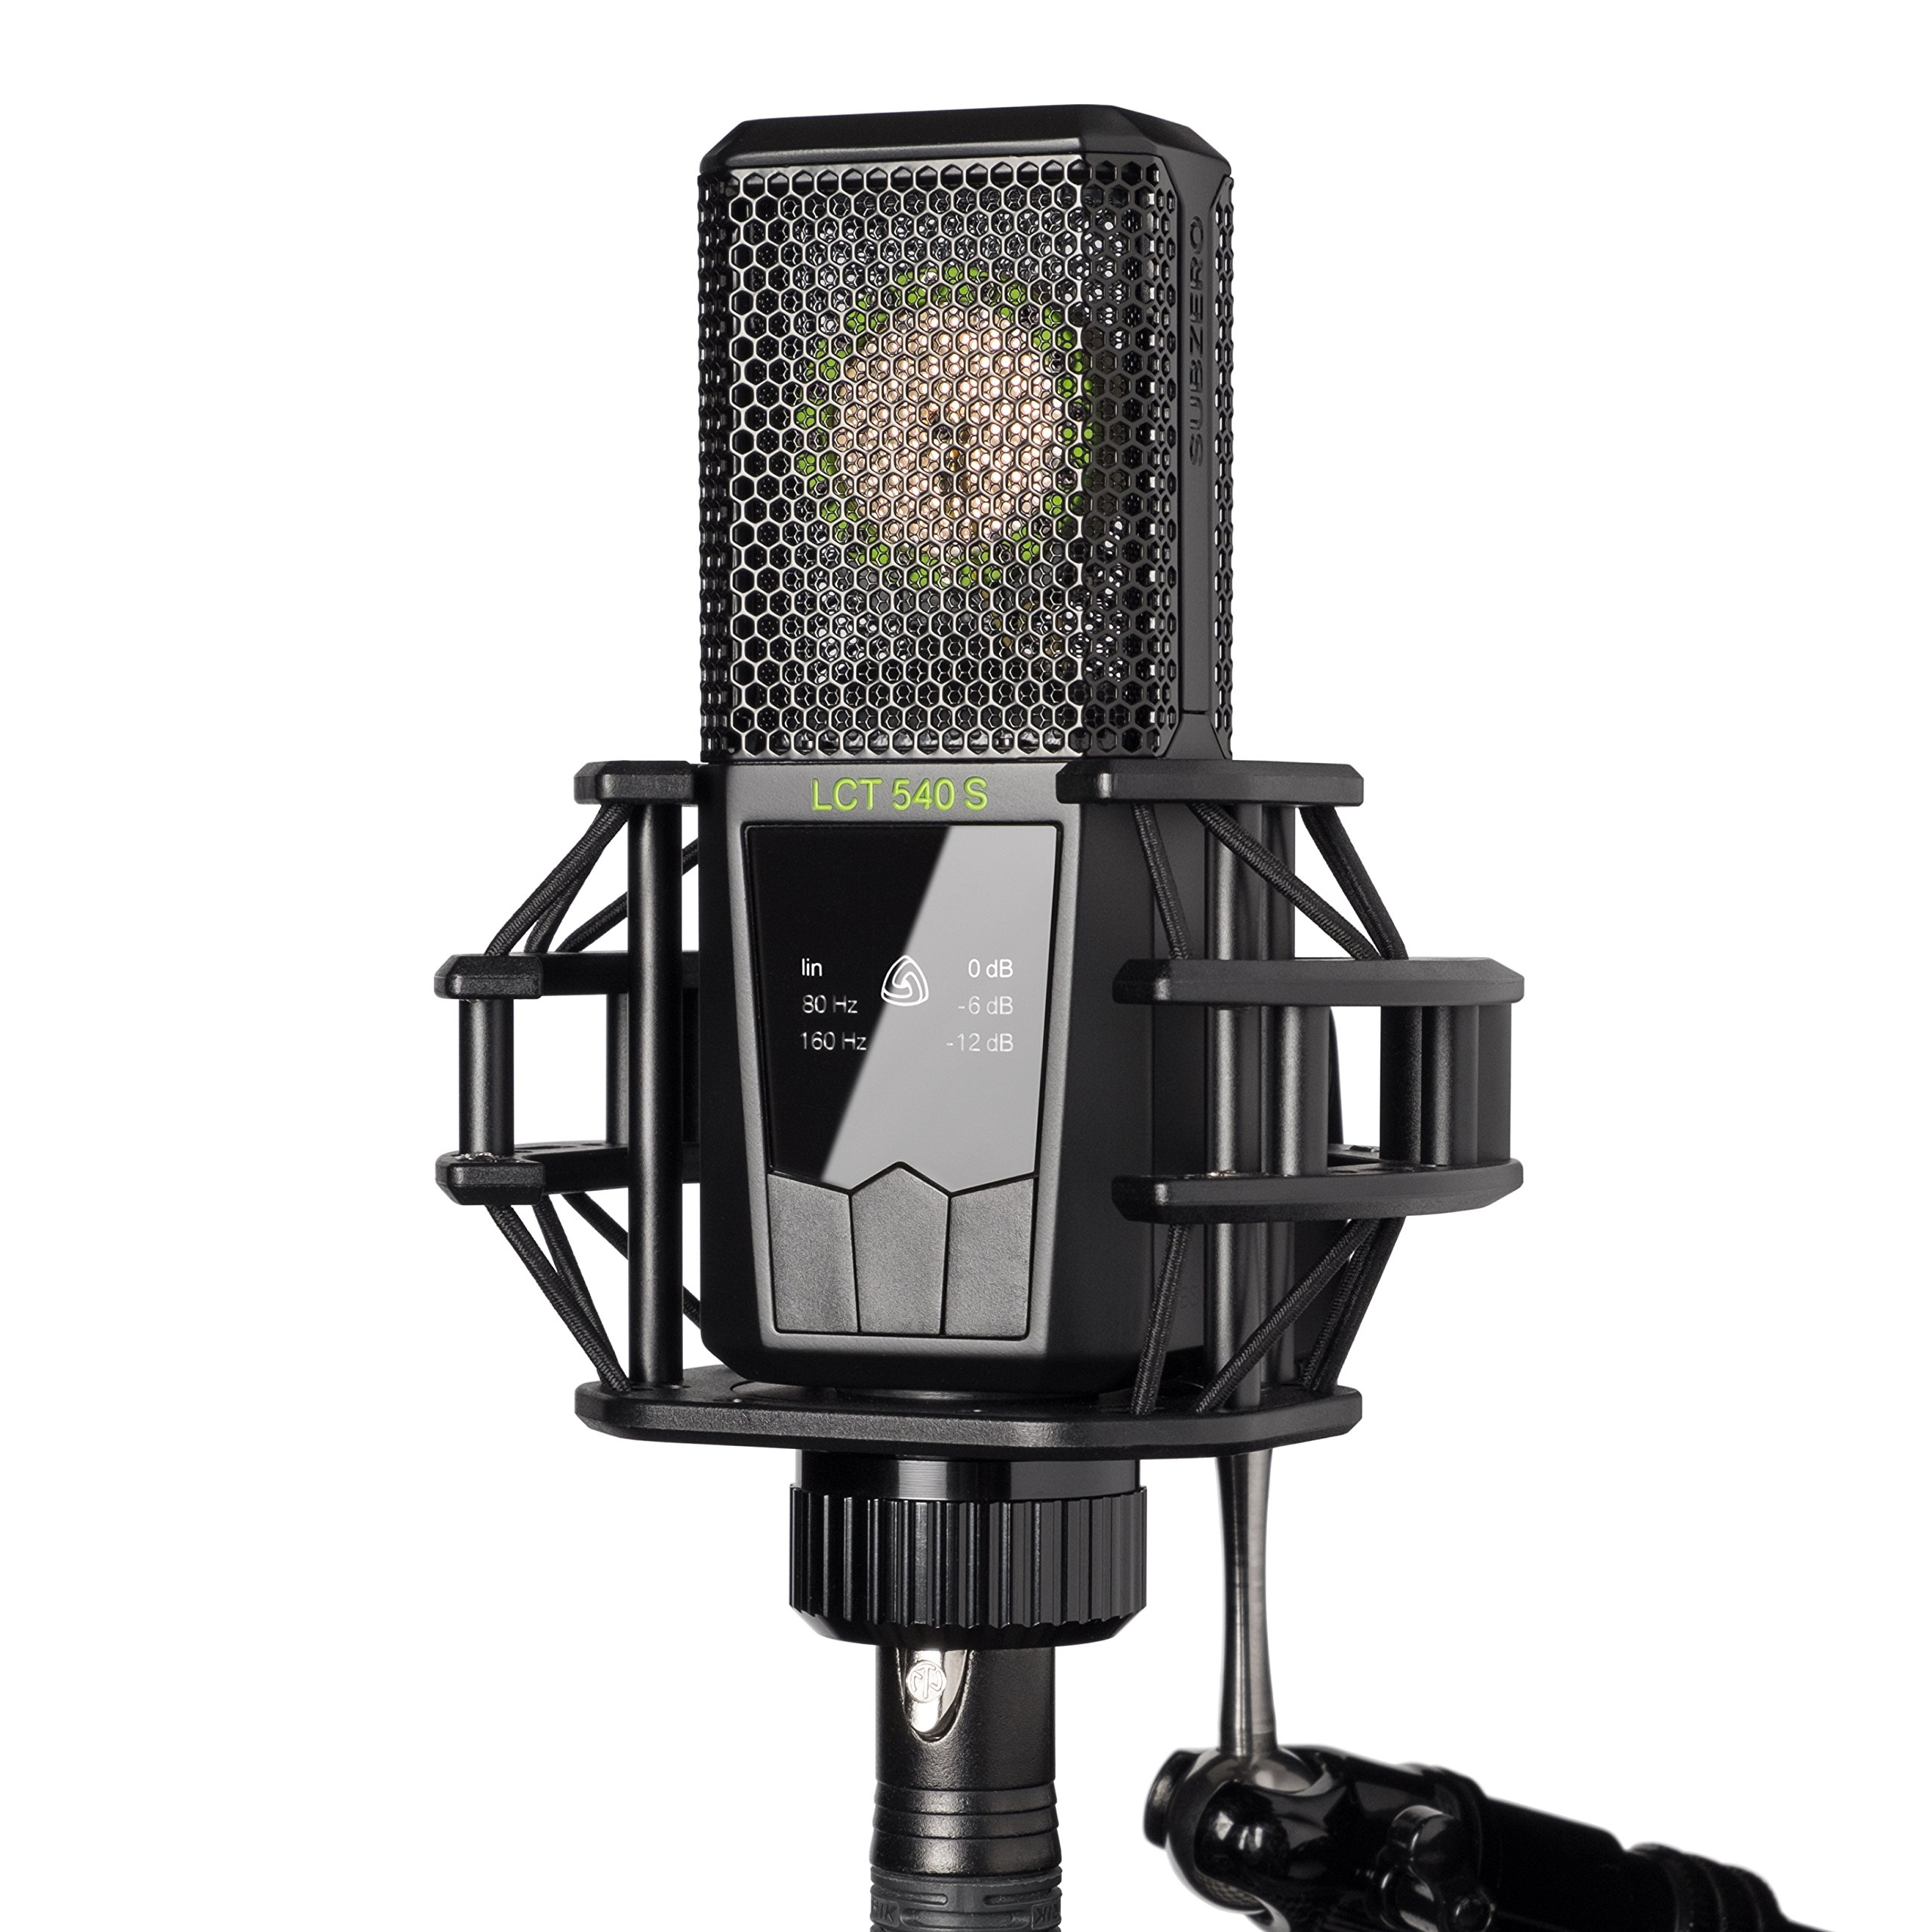 LEWITT LCT 540 SUBZERO Large Diaphragm Condenser Microphone by Lewitt